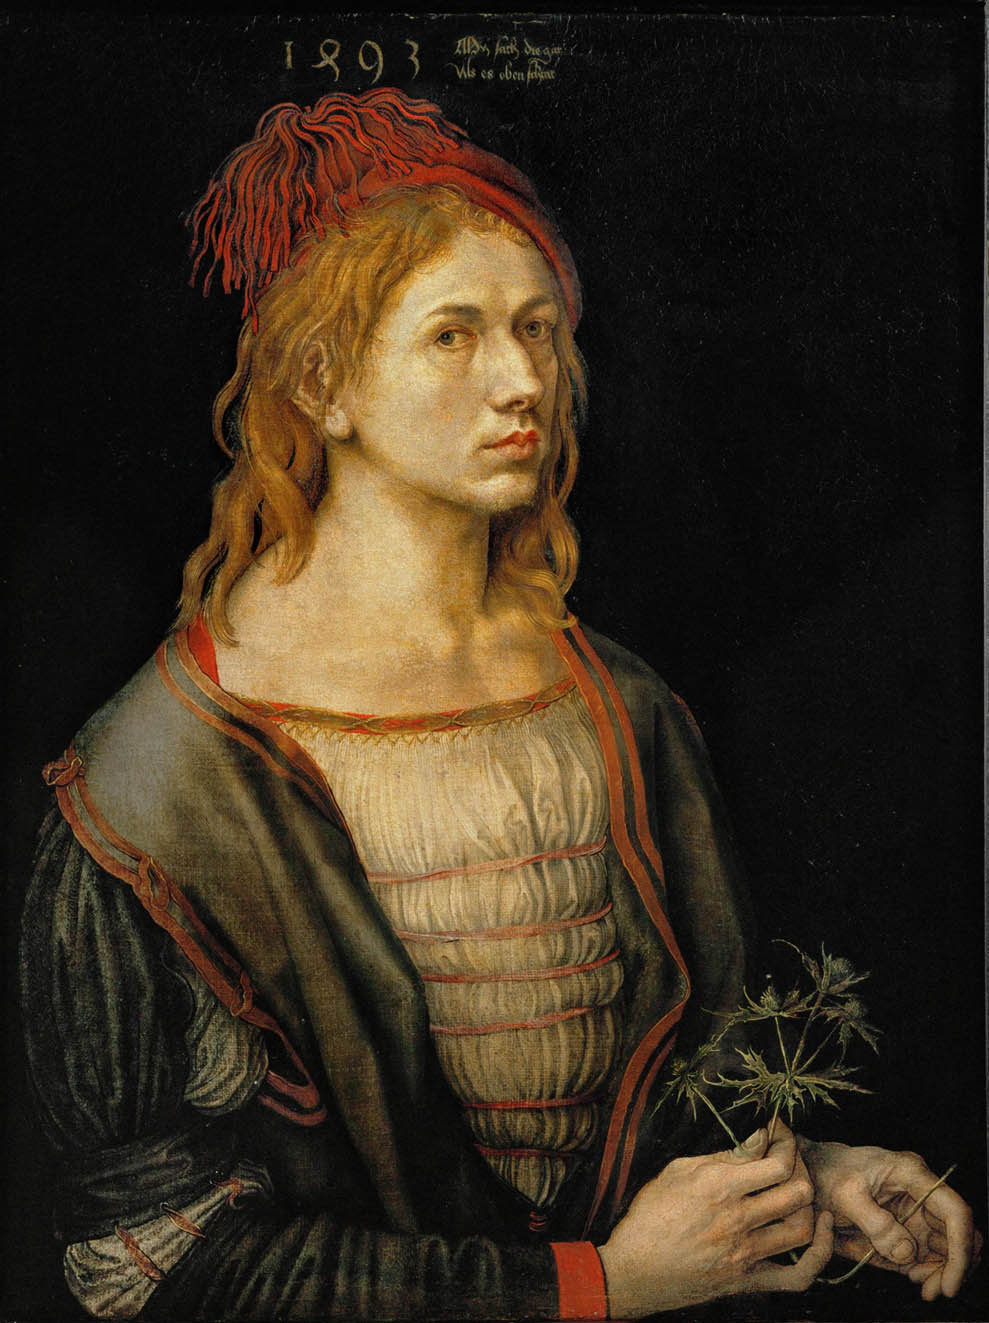 Self-Portrait or Portrait of the Artist Holding a Thistle (1493)